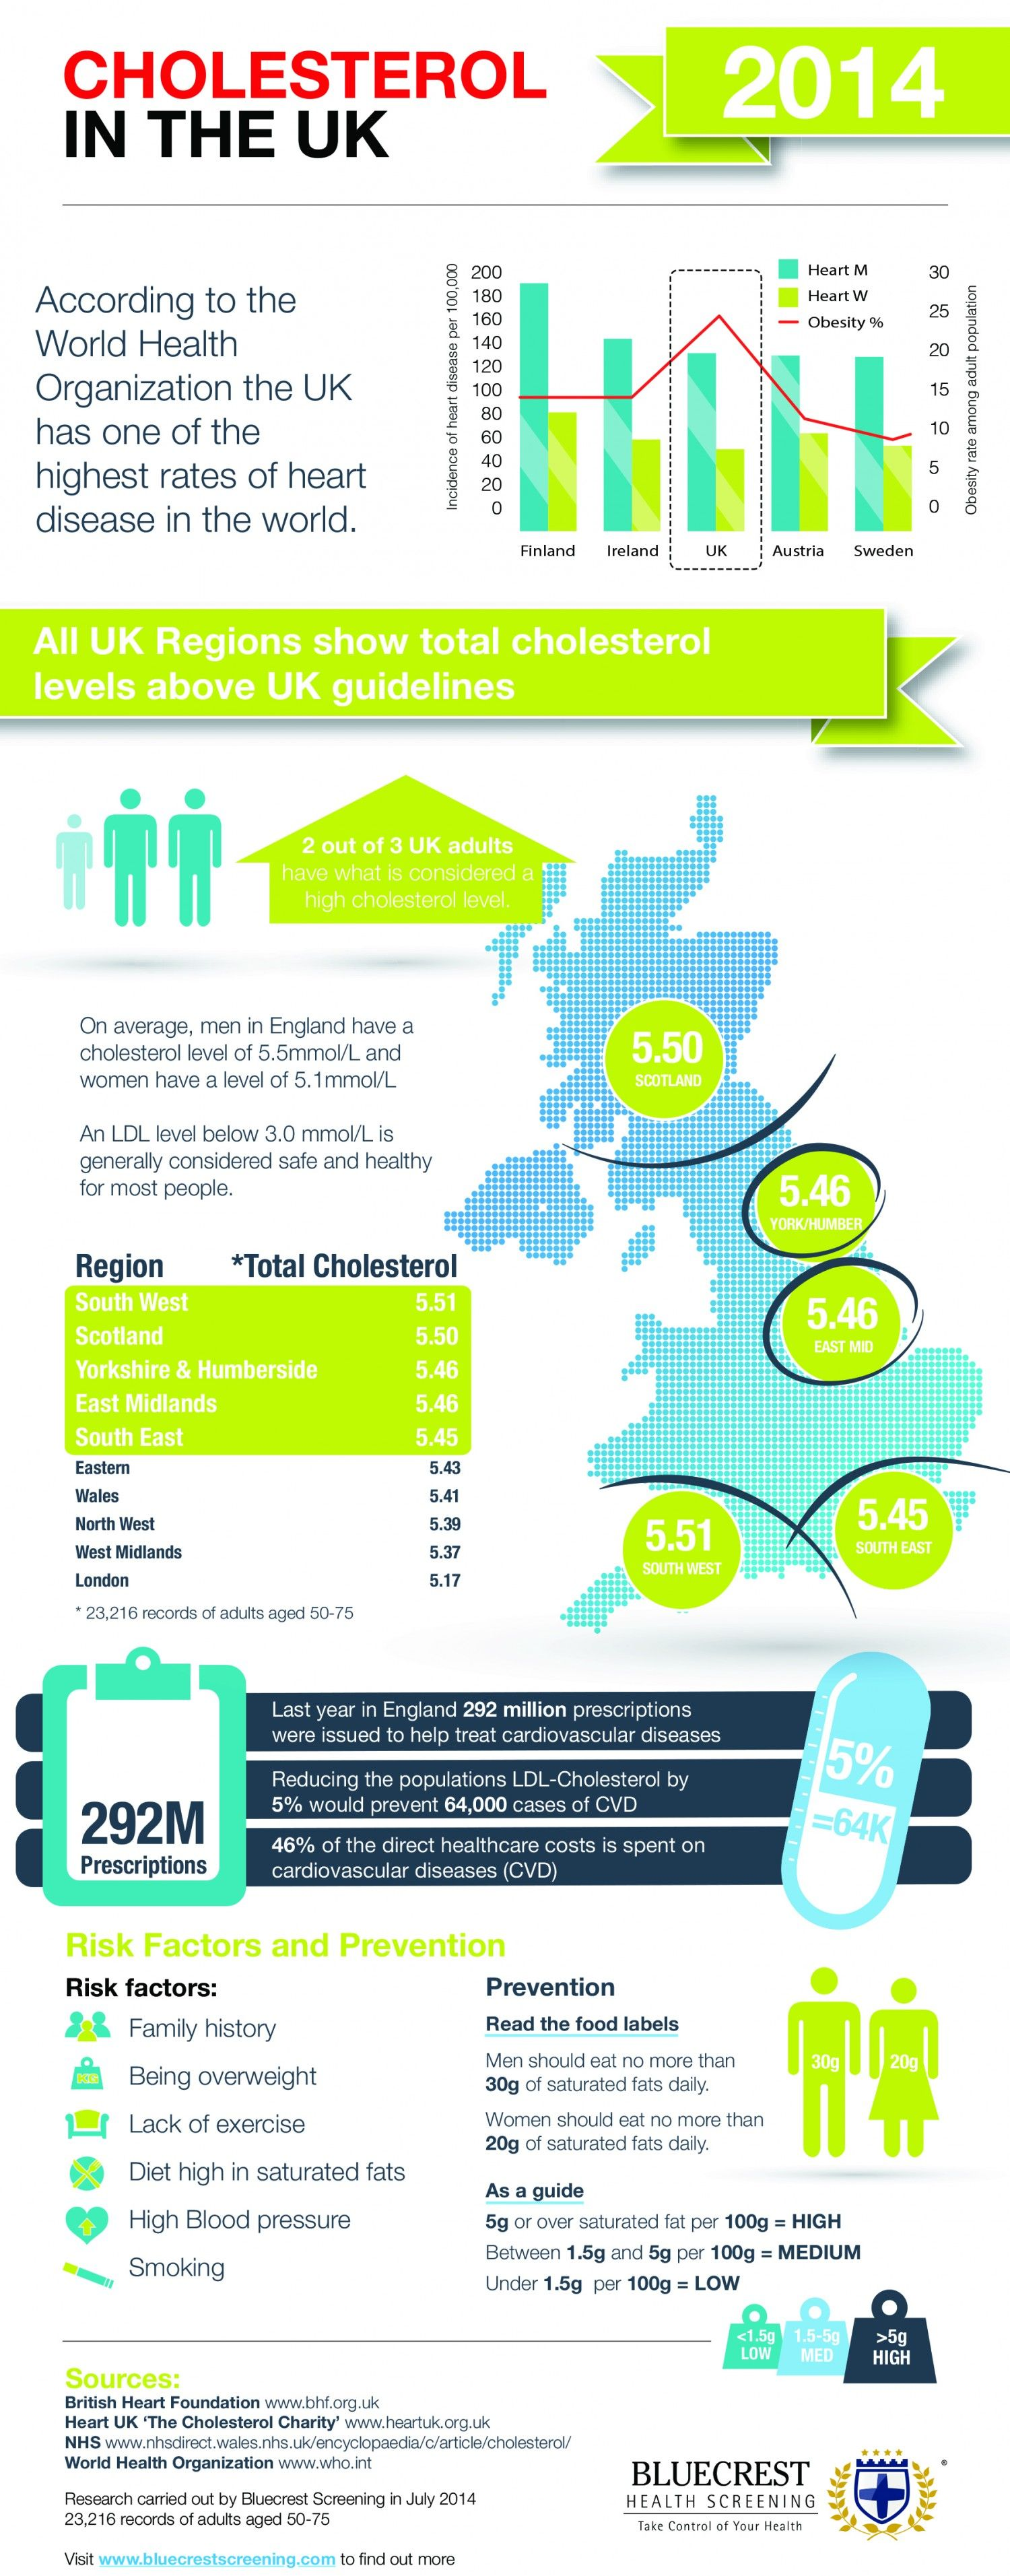 Cholesterol in the UK 2014 Infographic Cholesterol